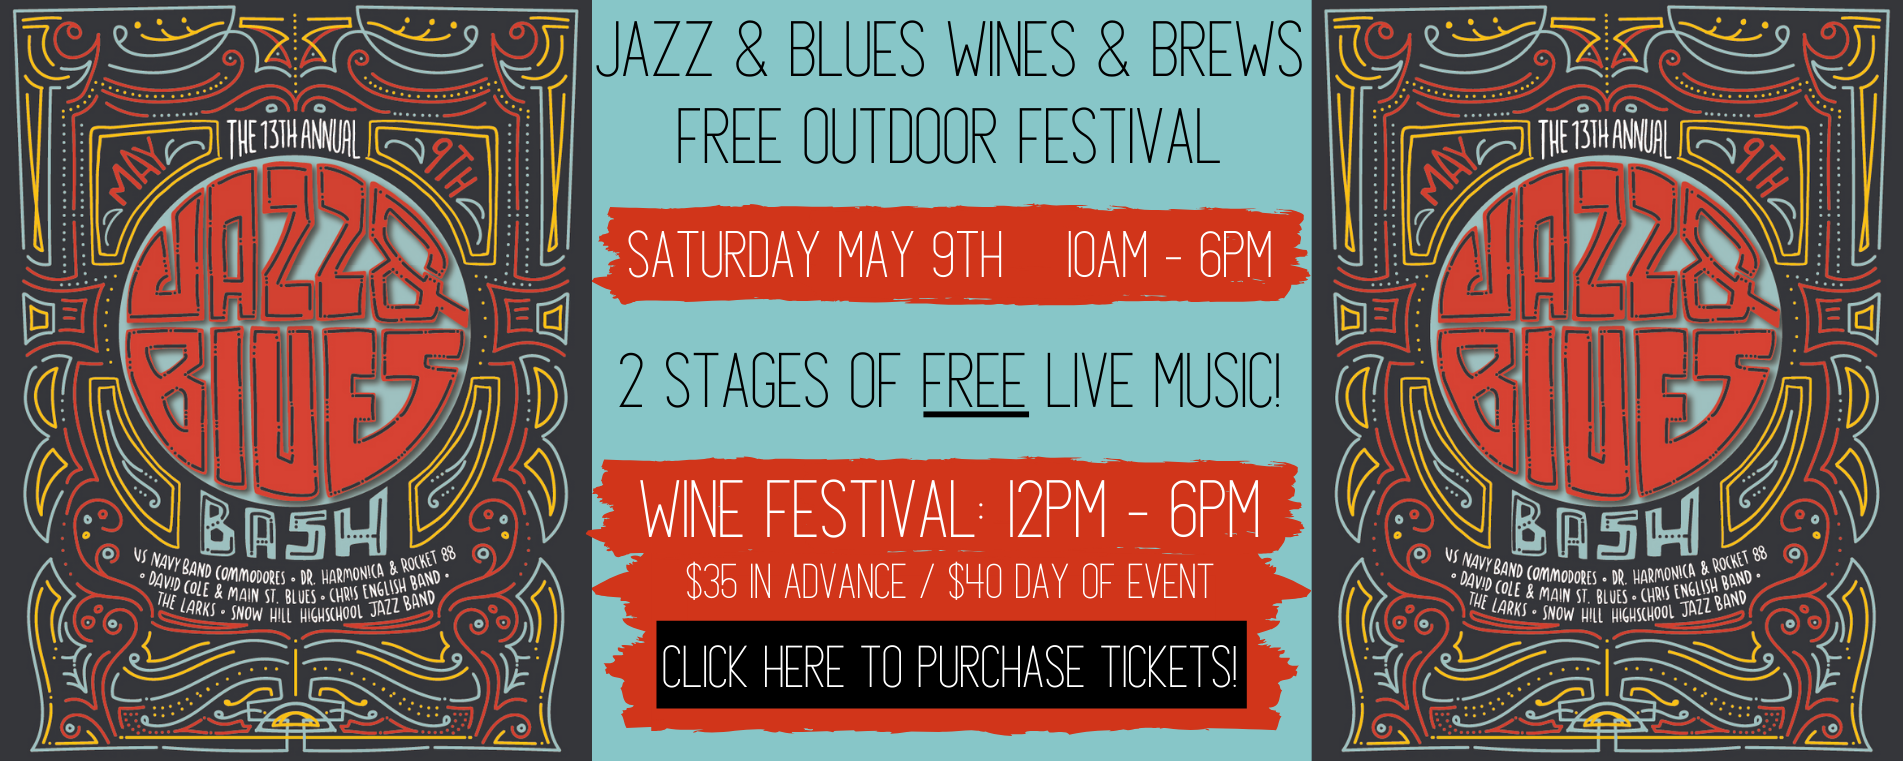 Berlin Blues and Jazz Fest graphic